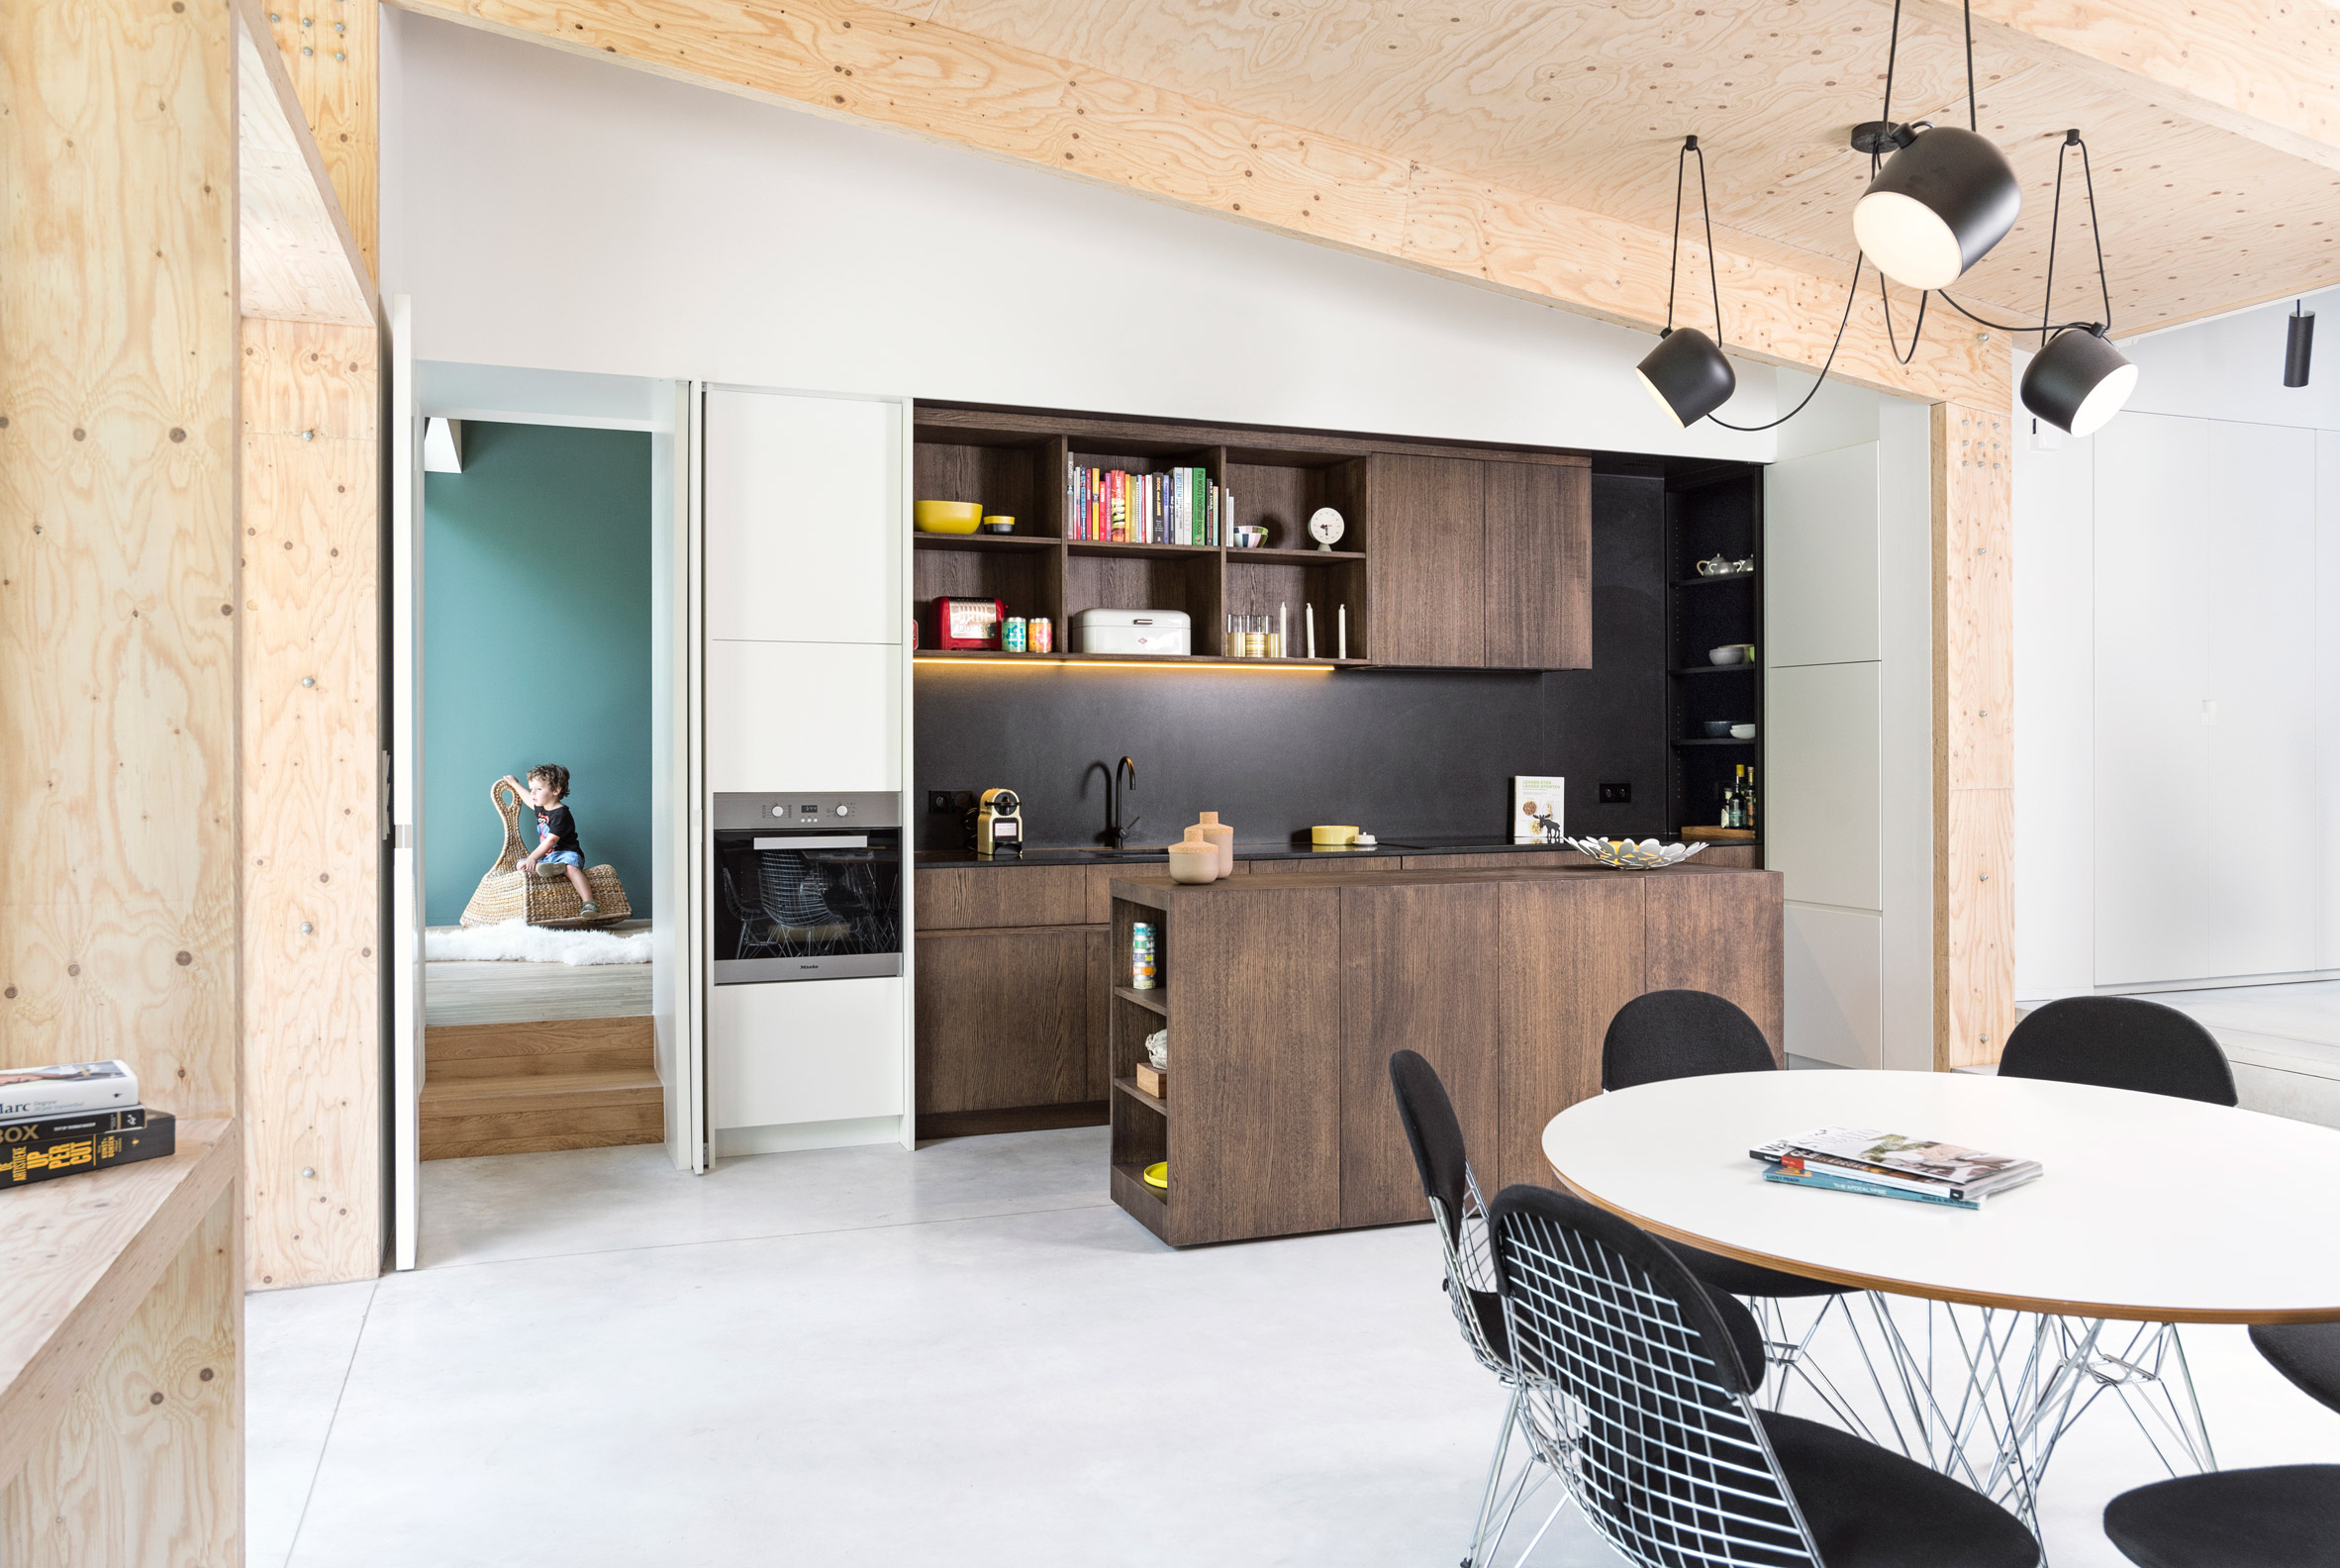 Rob Mols and Studio K update Belgian home with wood-lined garden room